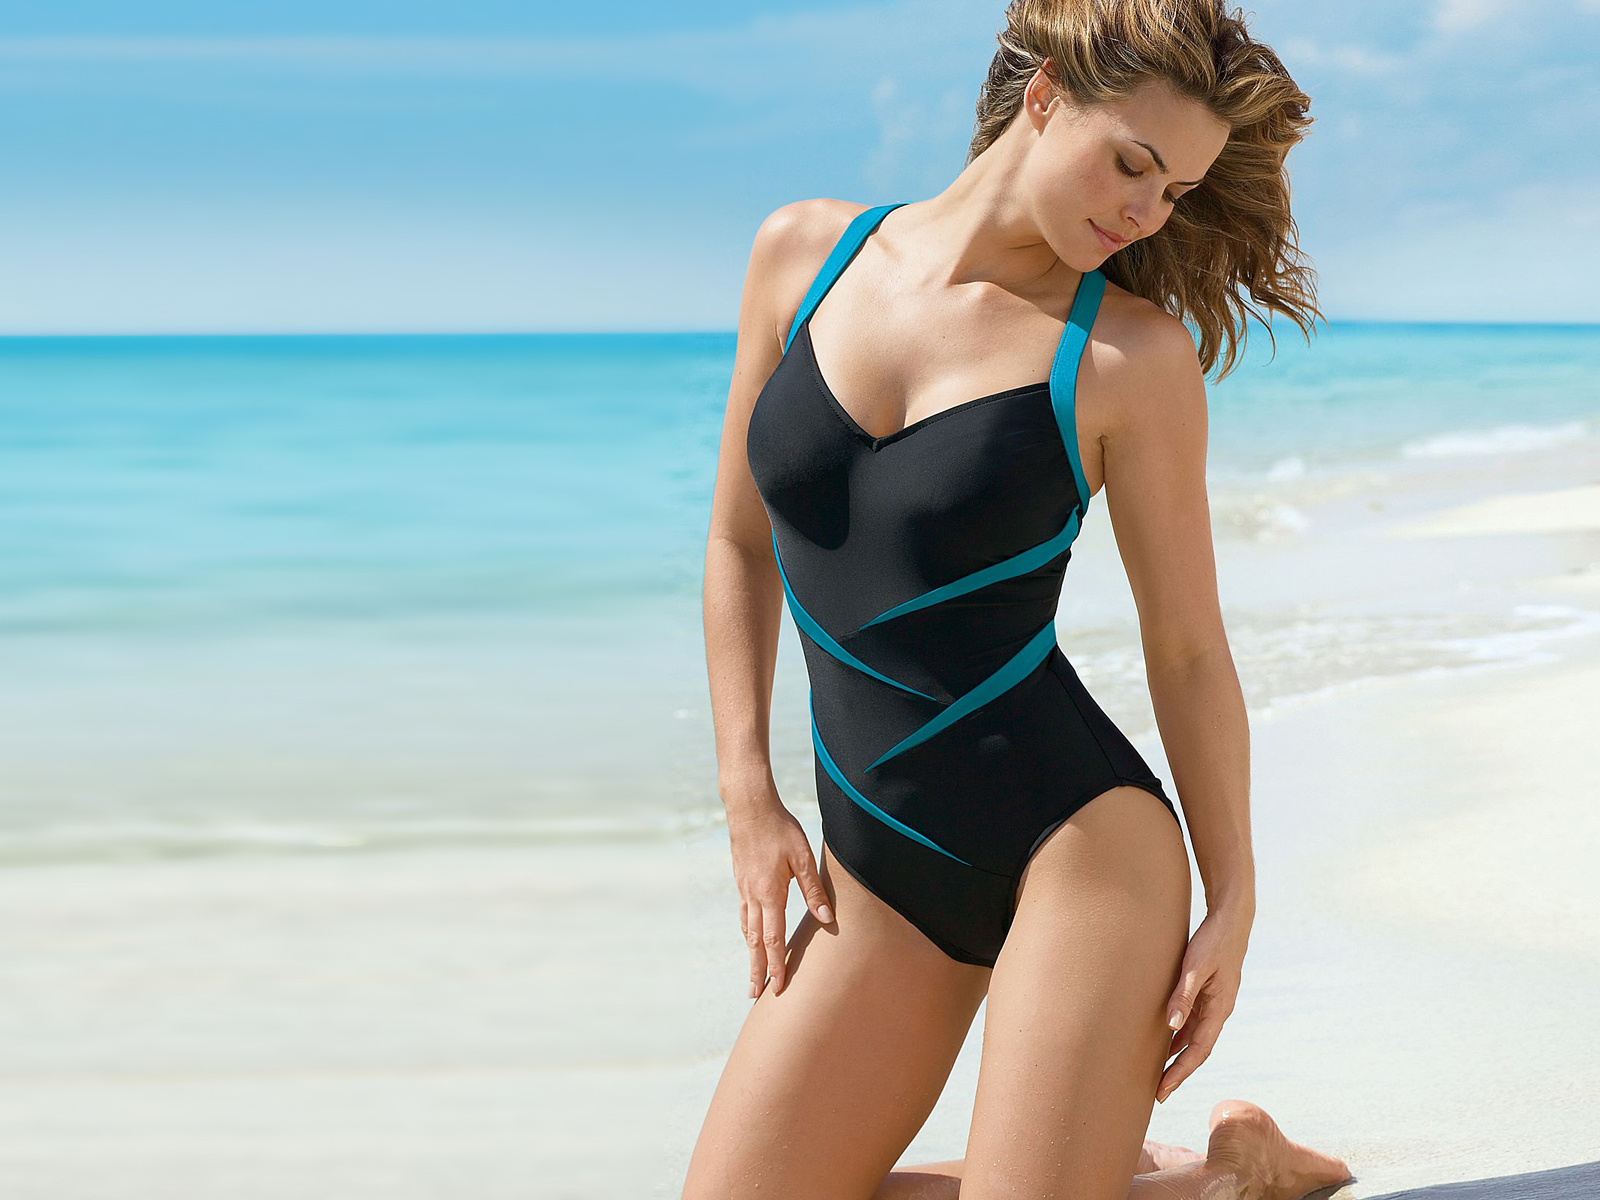 Buy Women Maternity Swimsuits For Pregnant Ladies, One Piece Swimming Costume Swimwear: Women Maternity Swimsuits For Pregnant Ladies, One Piece Swimming Costume Swimwear It is important for any pregnant lady to feel special and included with the rest when on the beach. This swimsuit does just that/5(7).